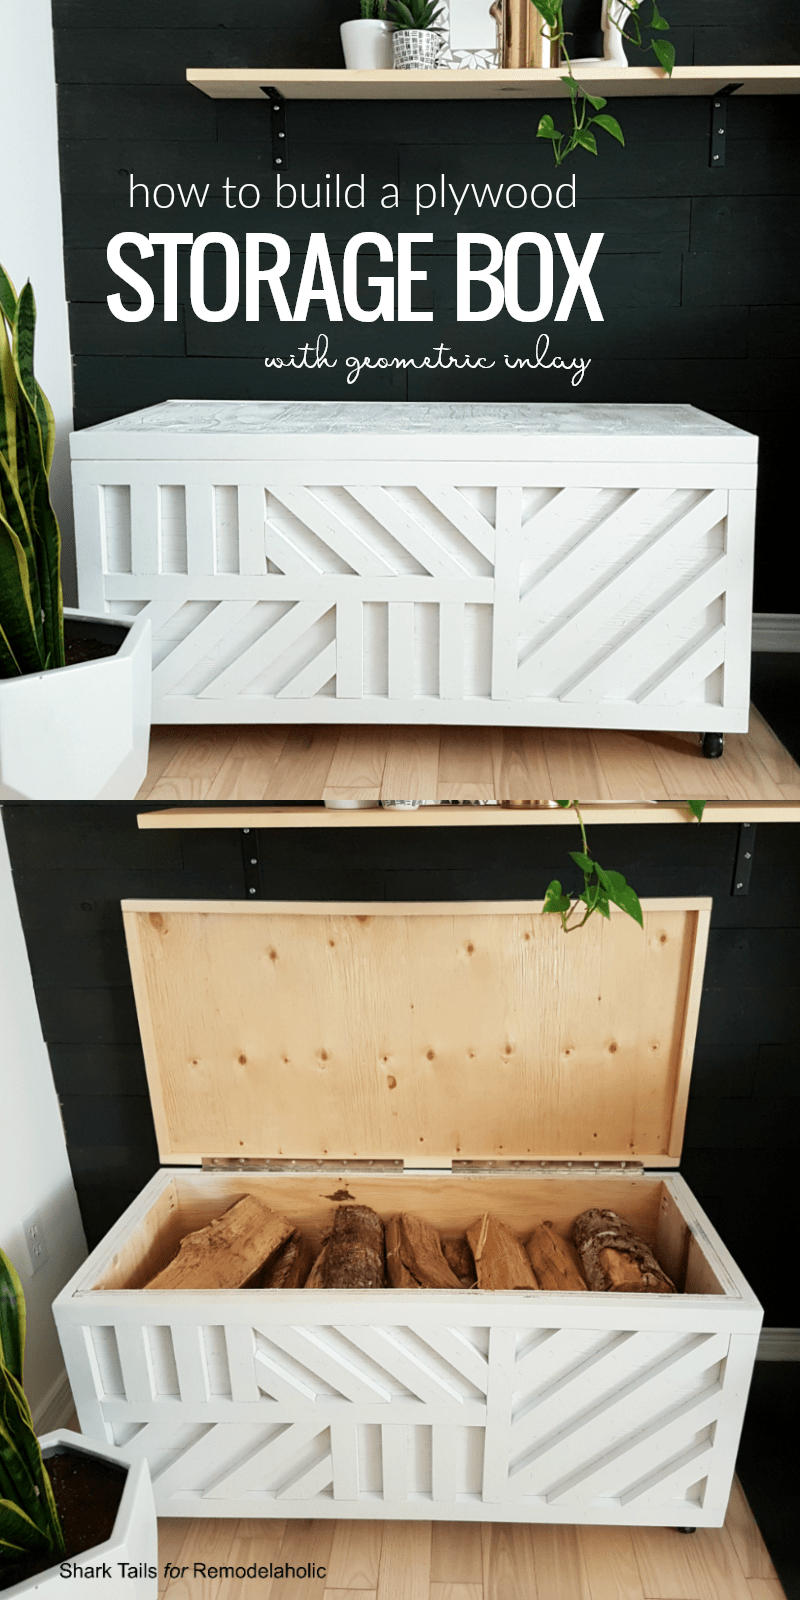 diy plywood storage box building plans for storing firewood